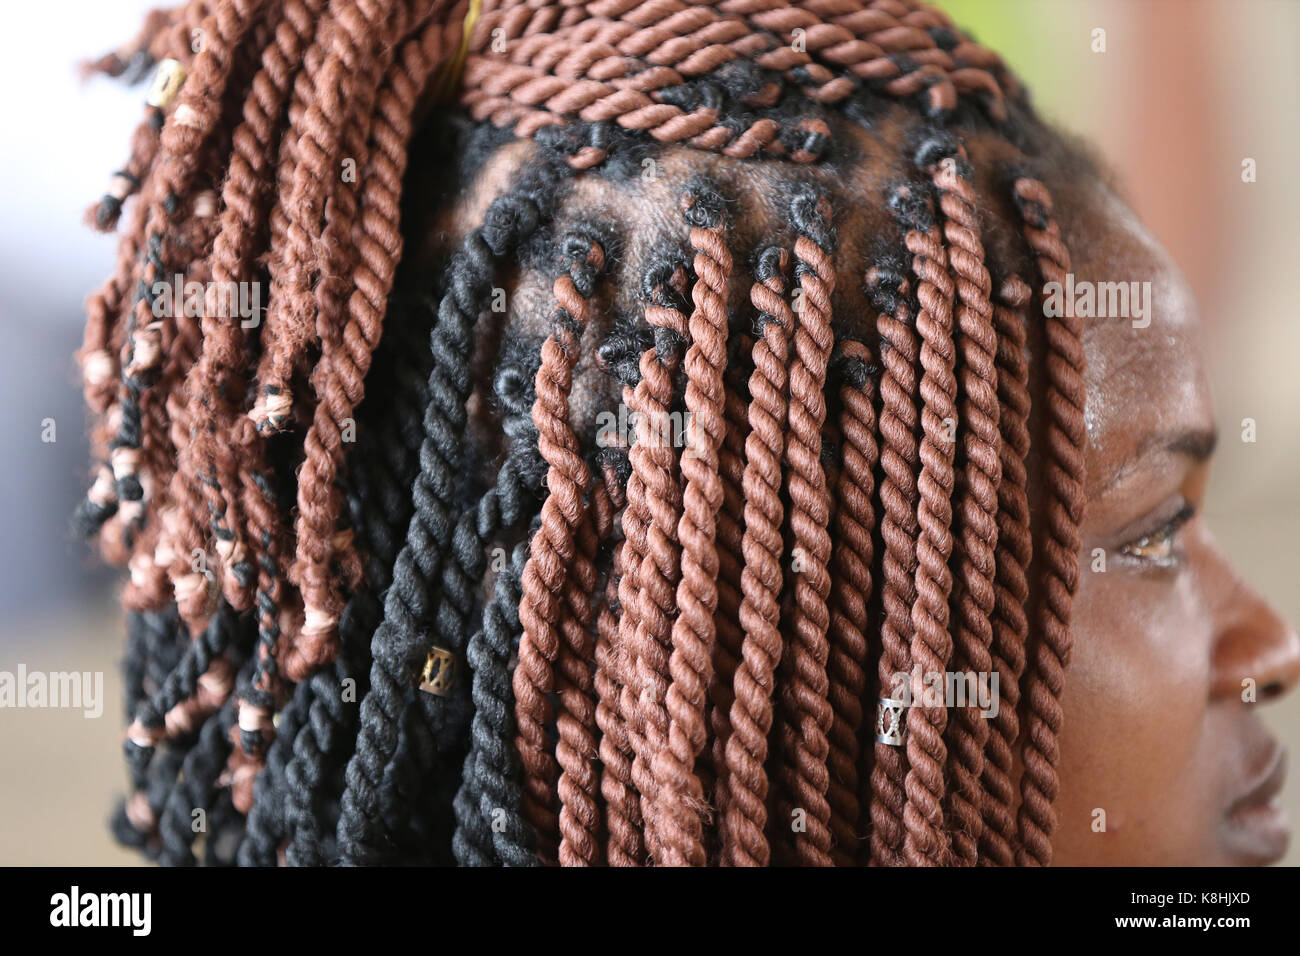 African woman with braided hair lome. togo. - Stock Image